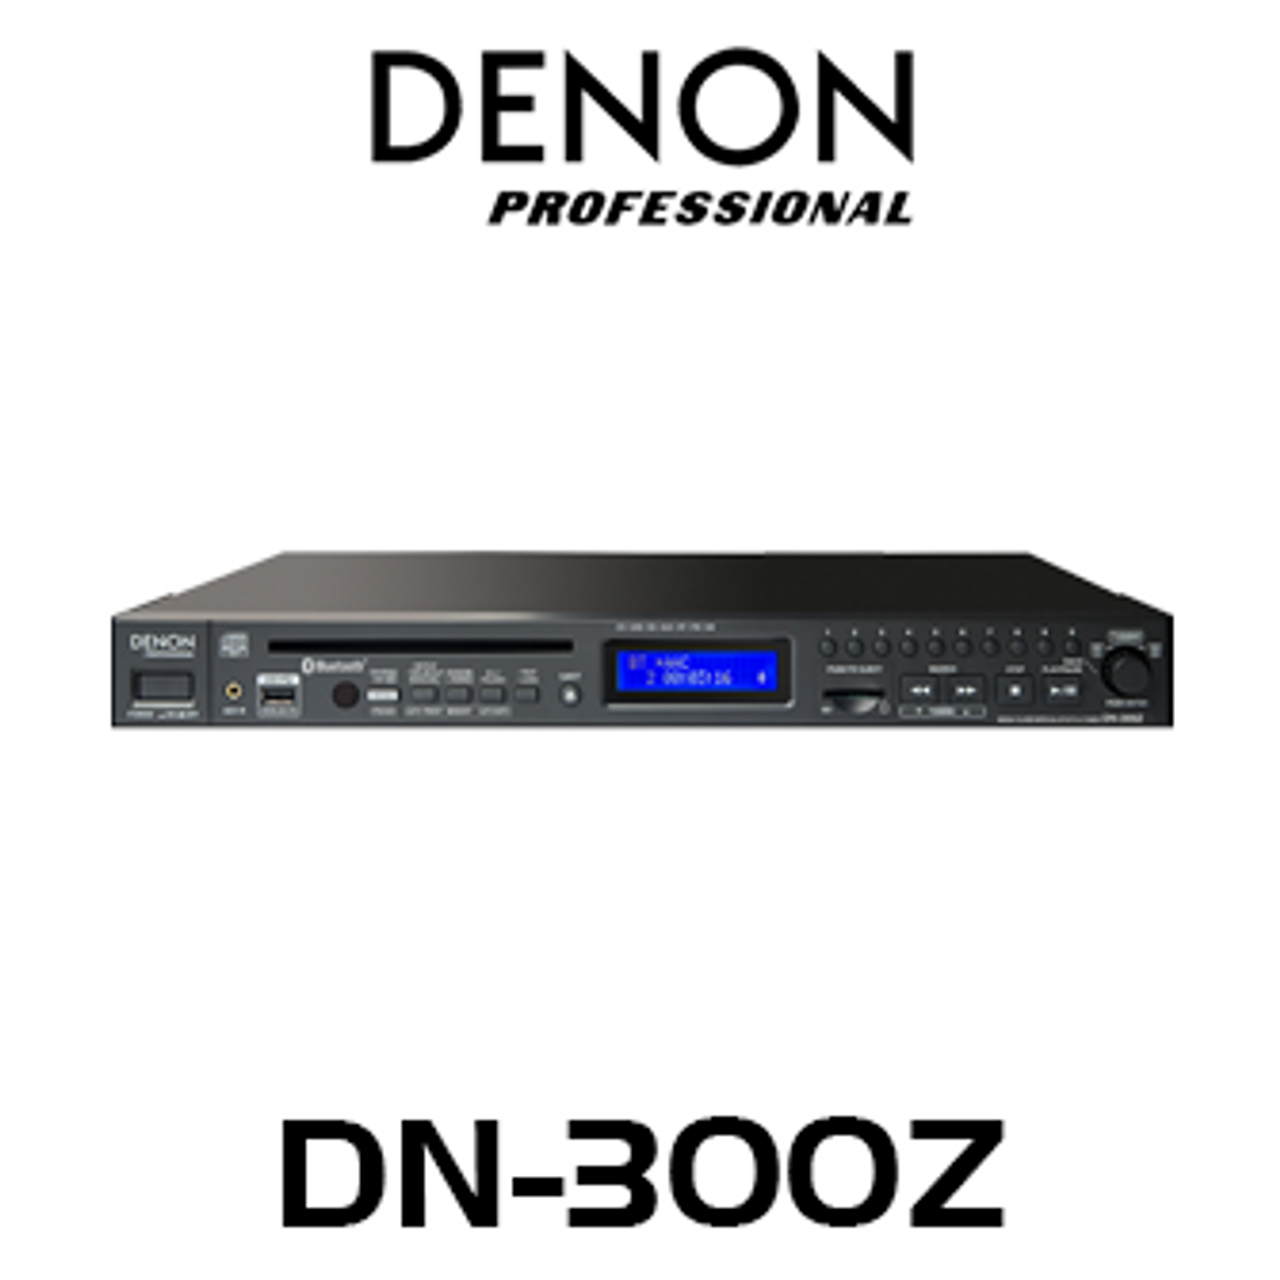 Denon Pro DN300Z 1U CD/Bluetooth/Media Player with AM/FM Tuner